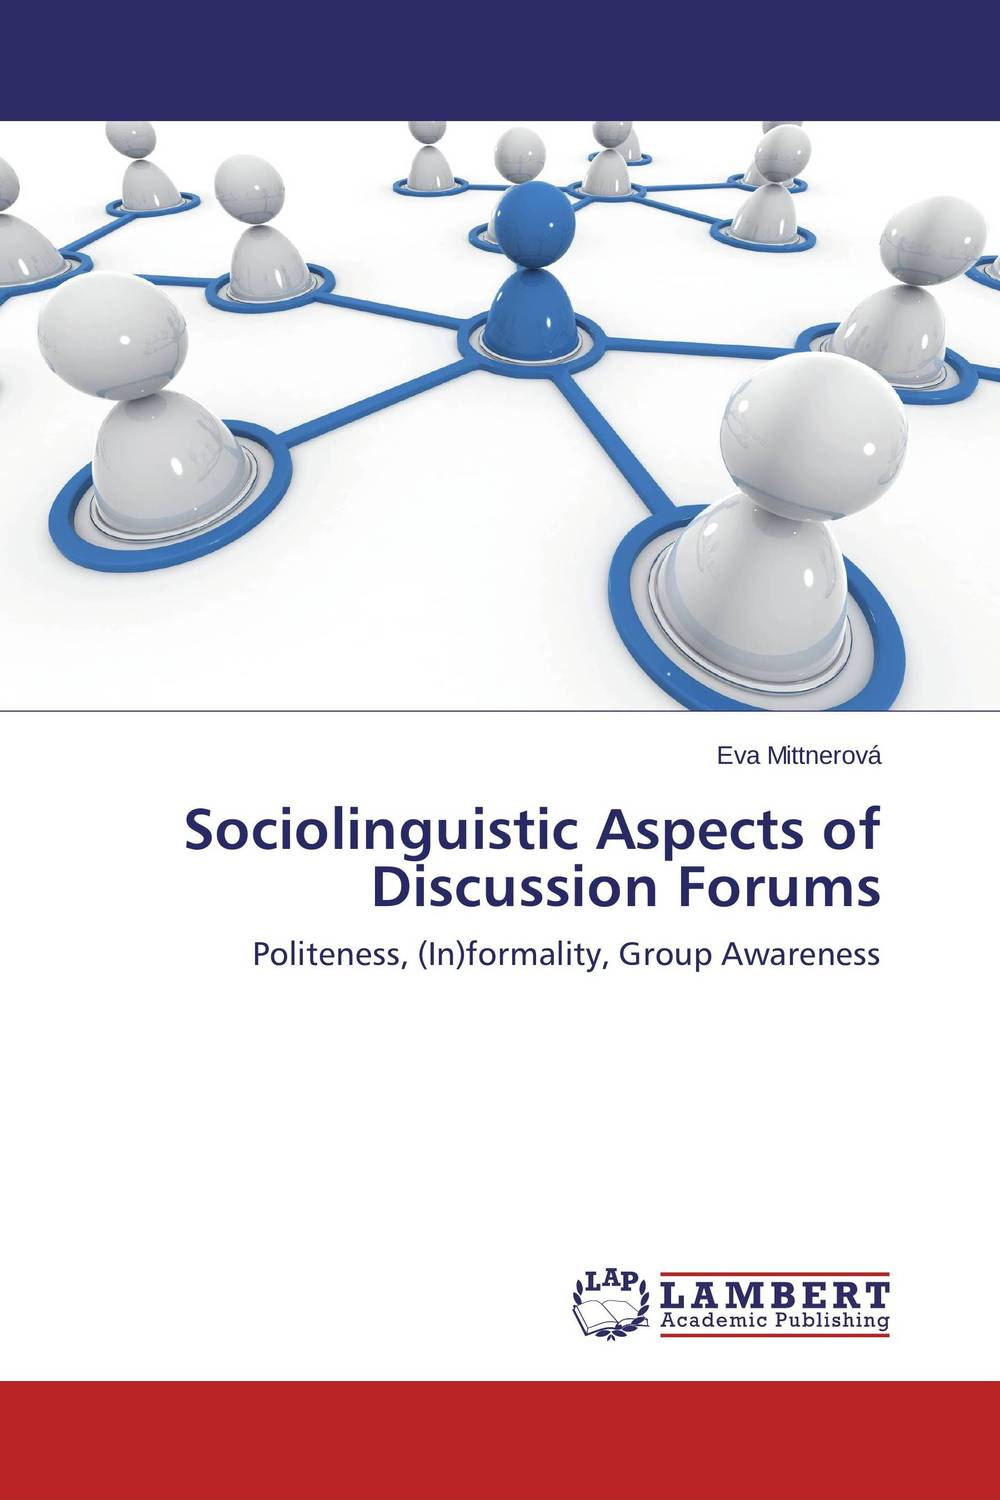 Sociolinguistic Aspects of Discussion Forums